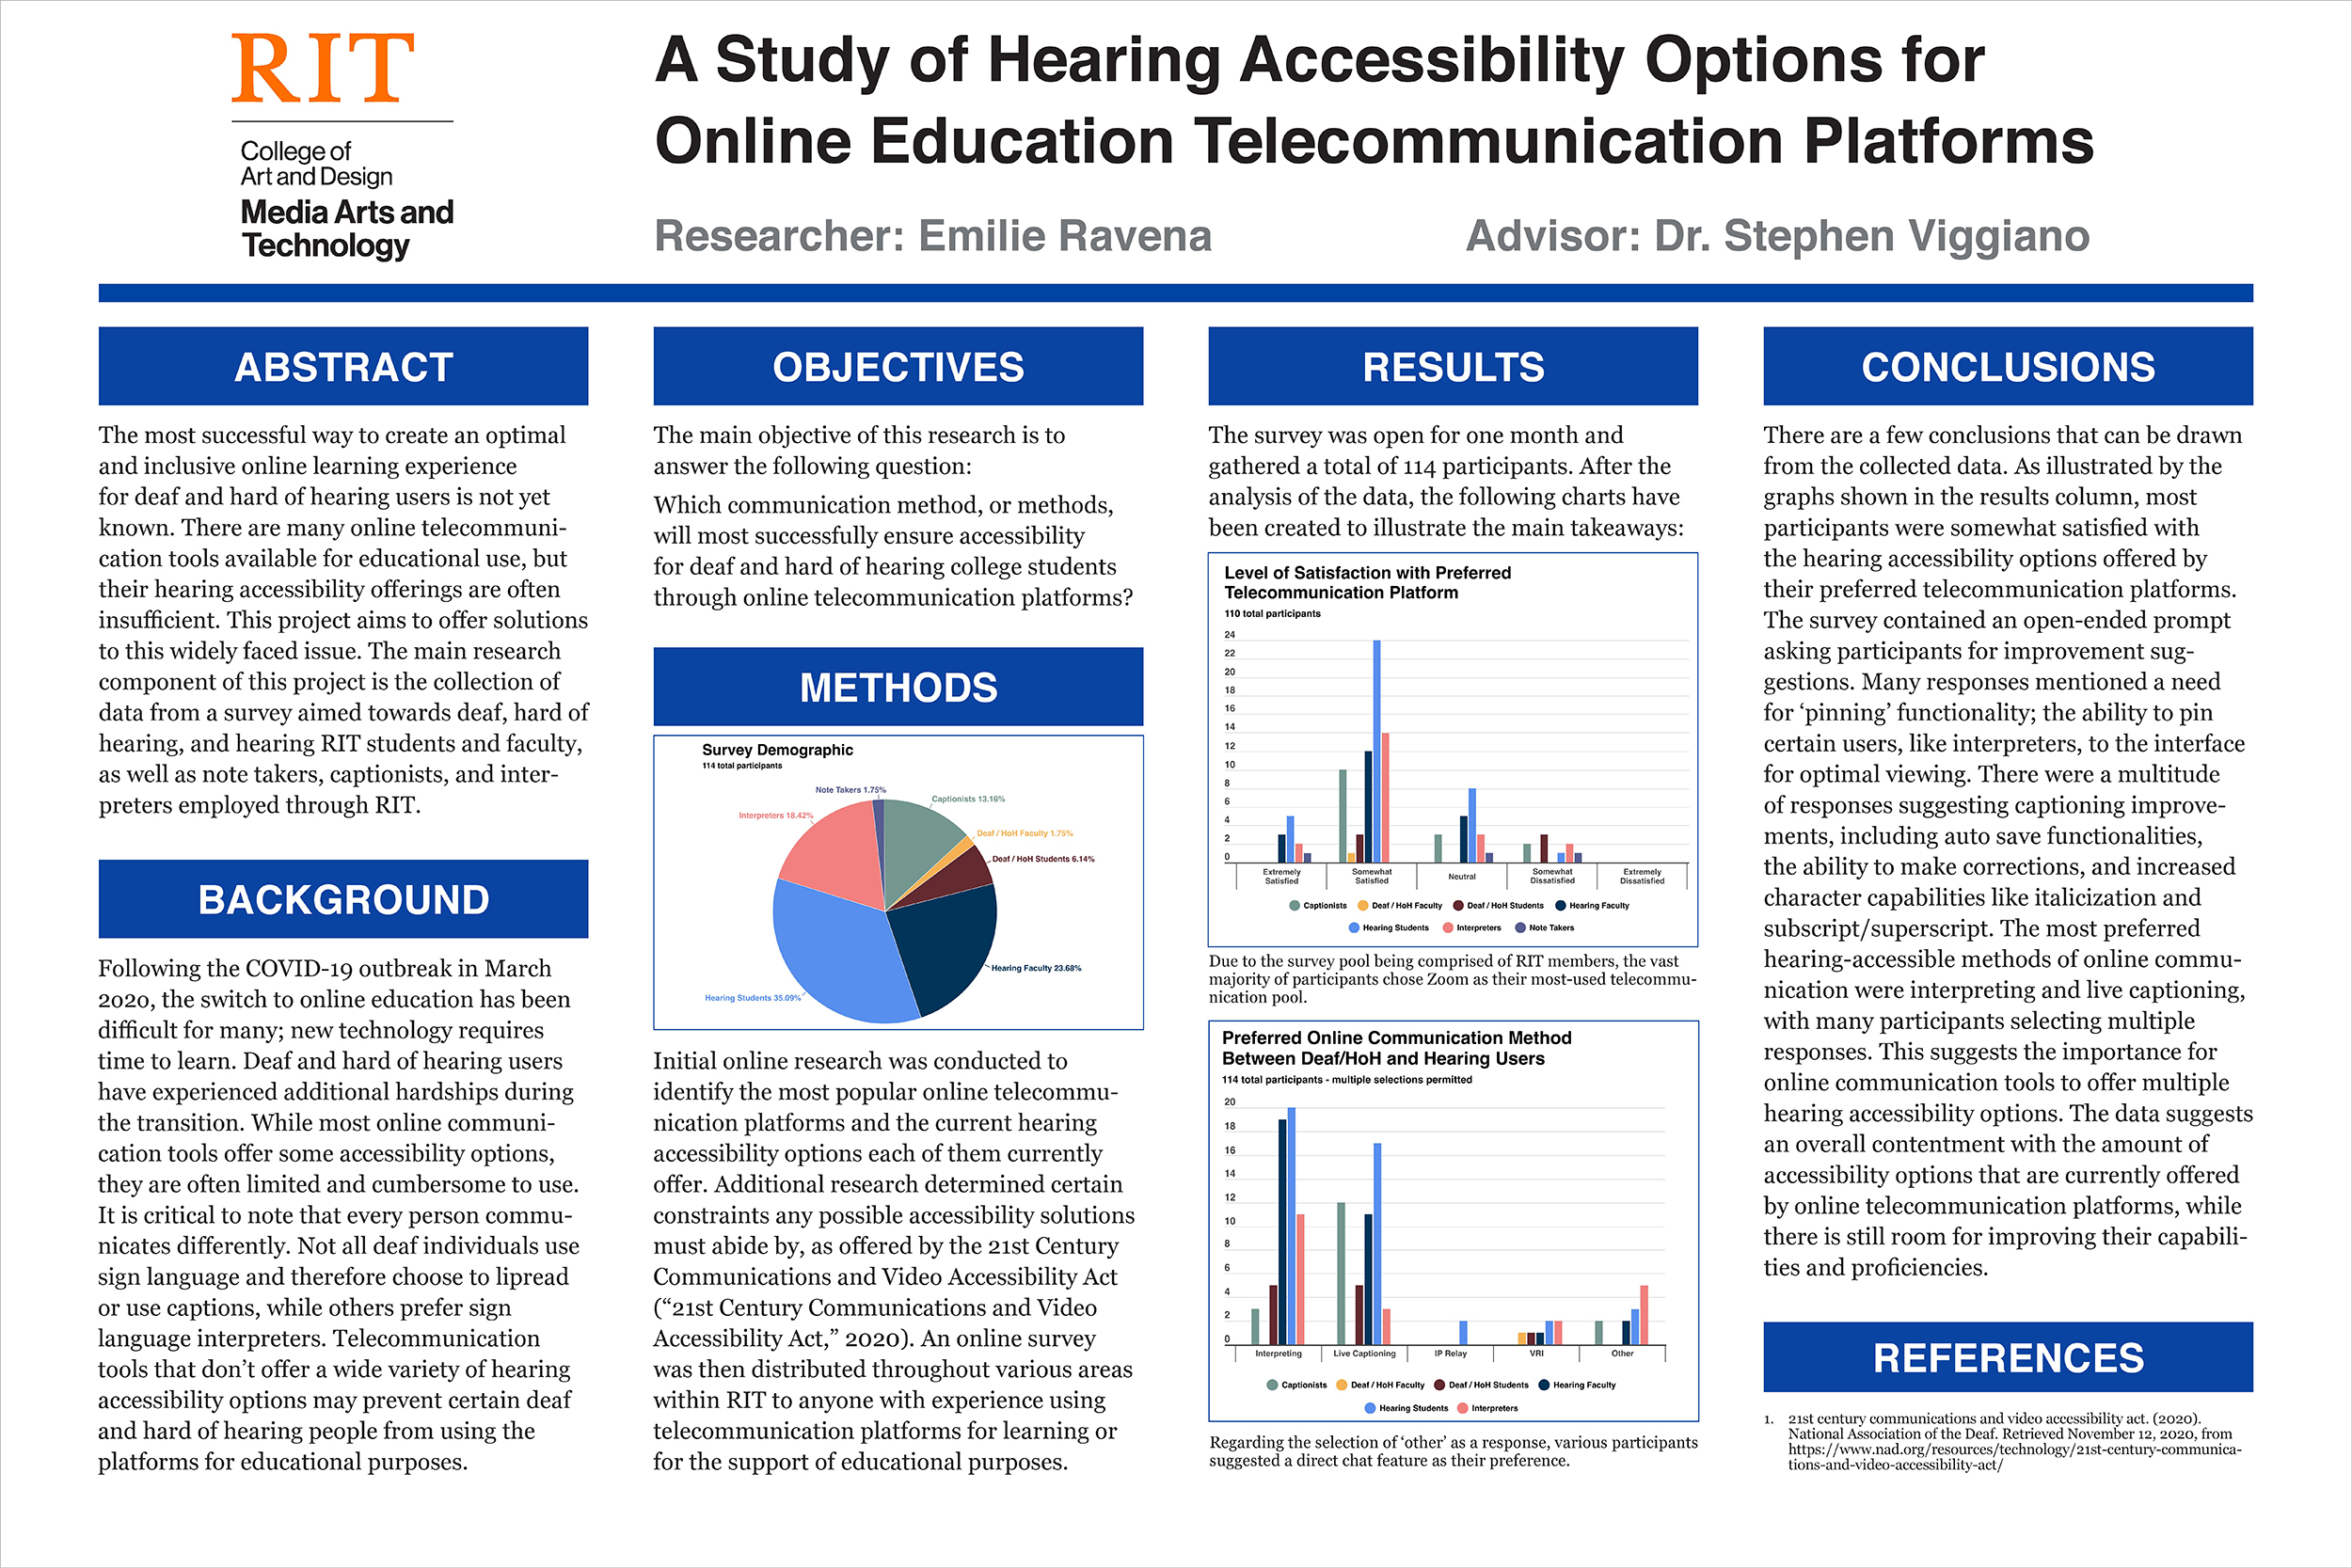 A poster of research on hearing accessibility options for online education telecommunication platforms.